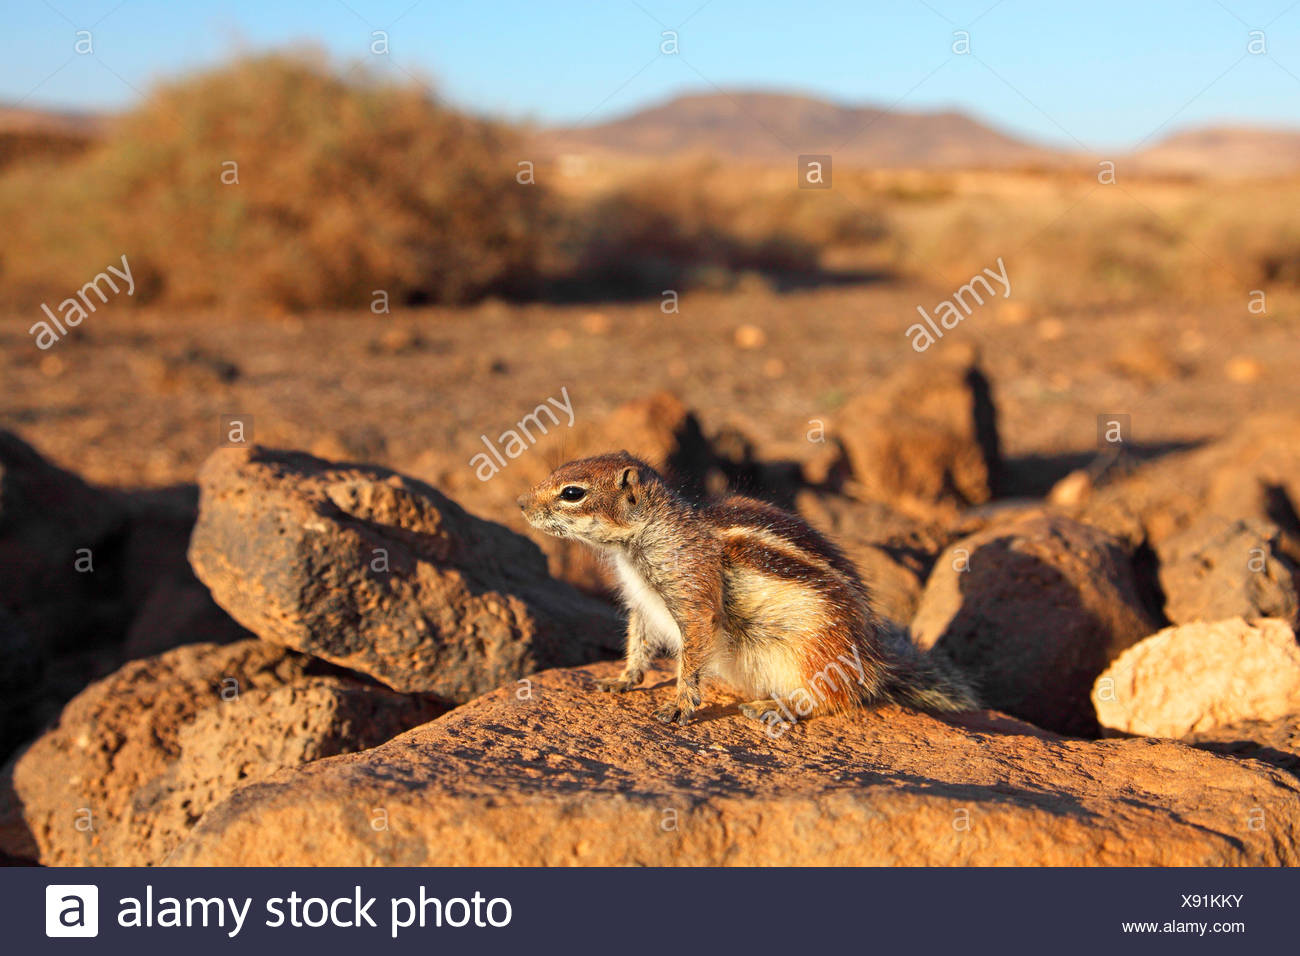 barbary ground squirrel, North African ground squirrel (Atlantoxerus getulus), sits on a stonewall in semi-desert, Canary Islands, Fuerteventura - Stock Image